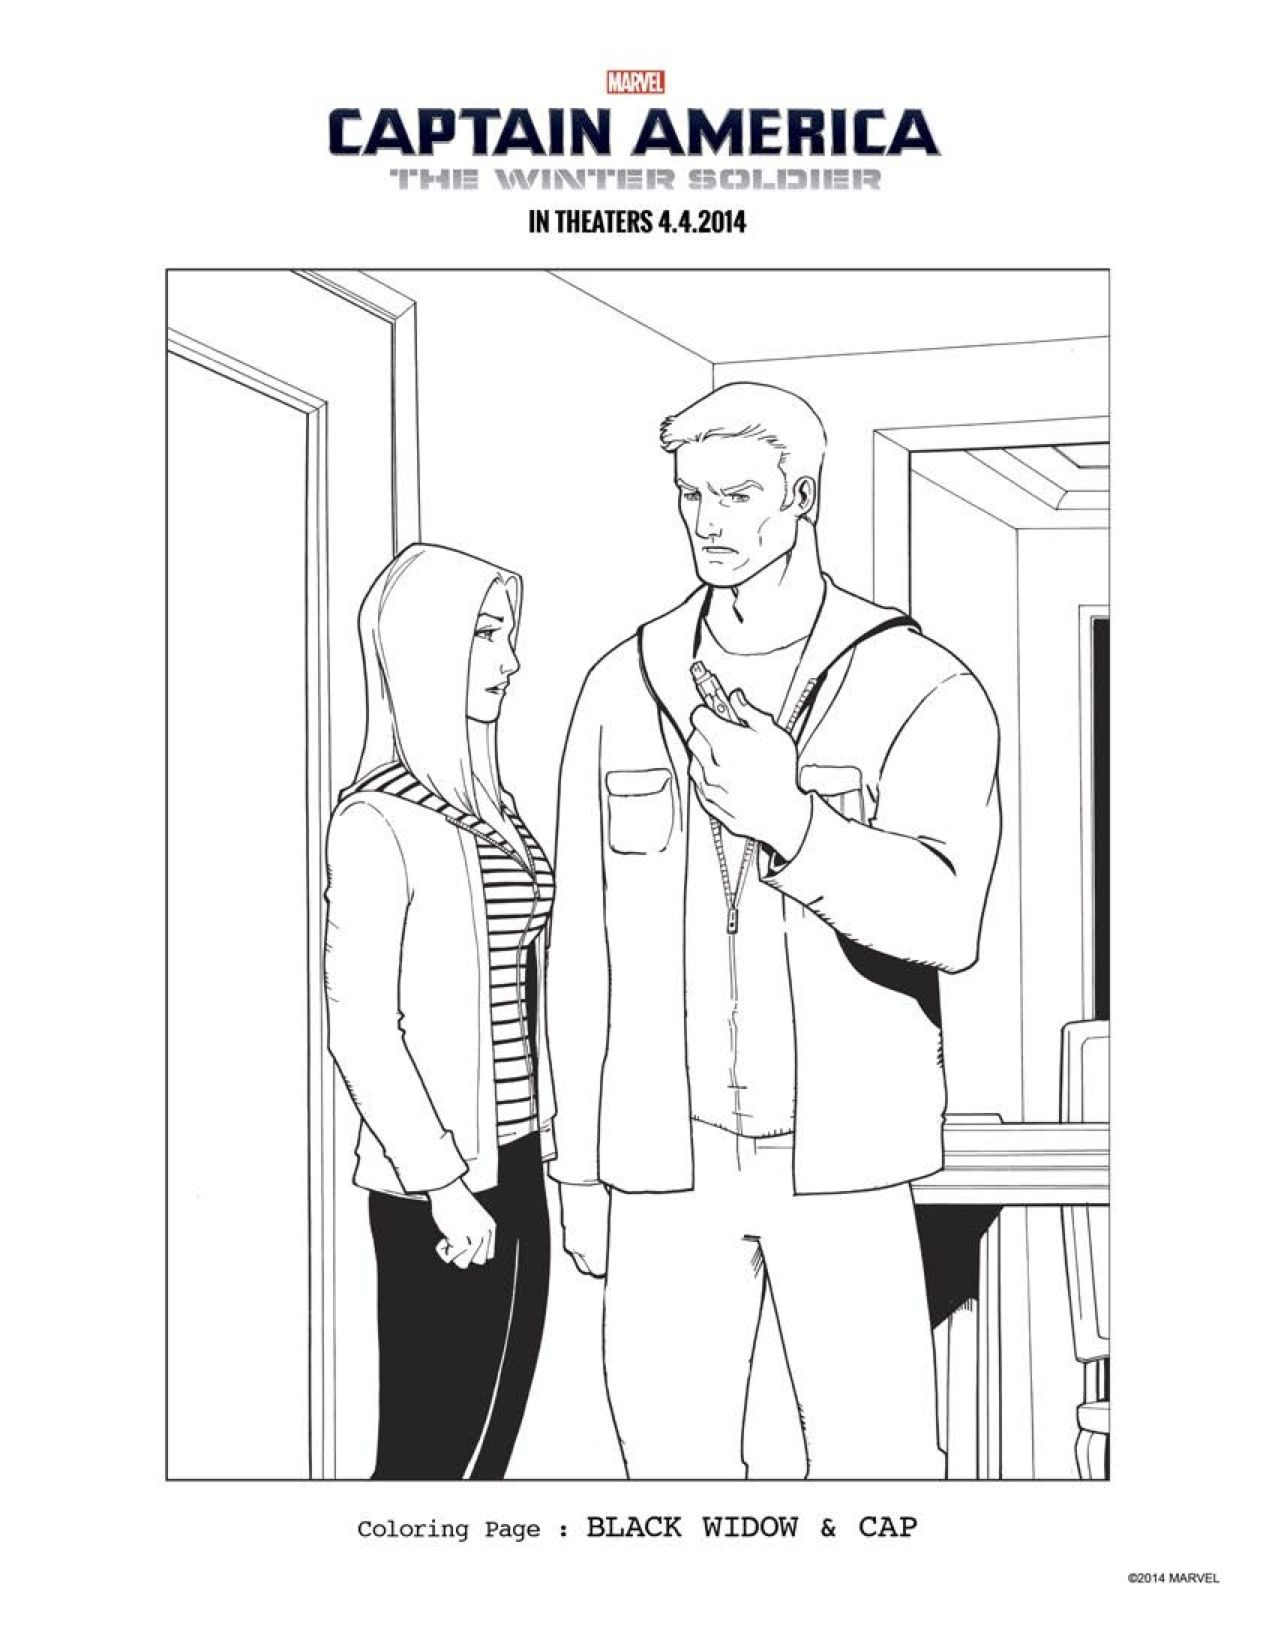 15 CAPTAIN AMERICA THE WINTER SOLDIER coloring sheets to keep